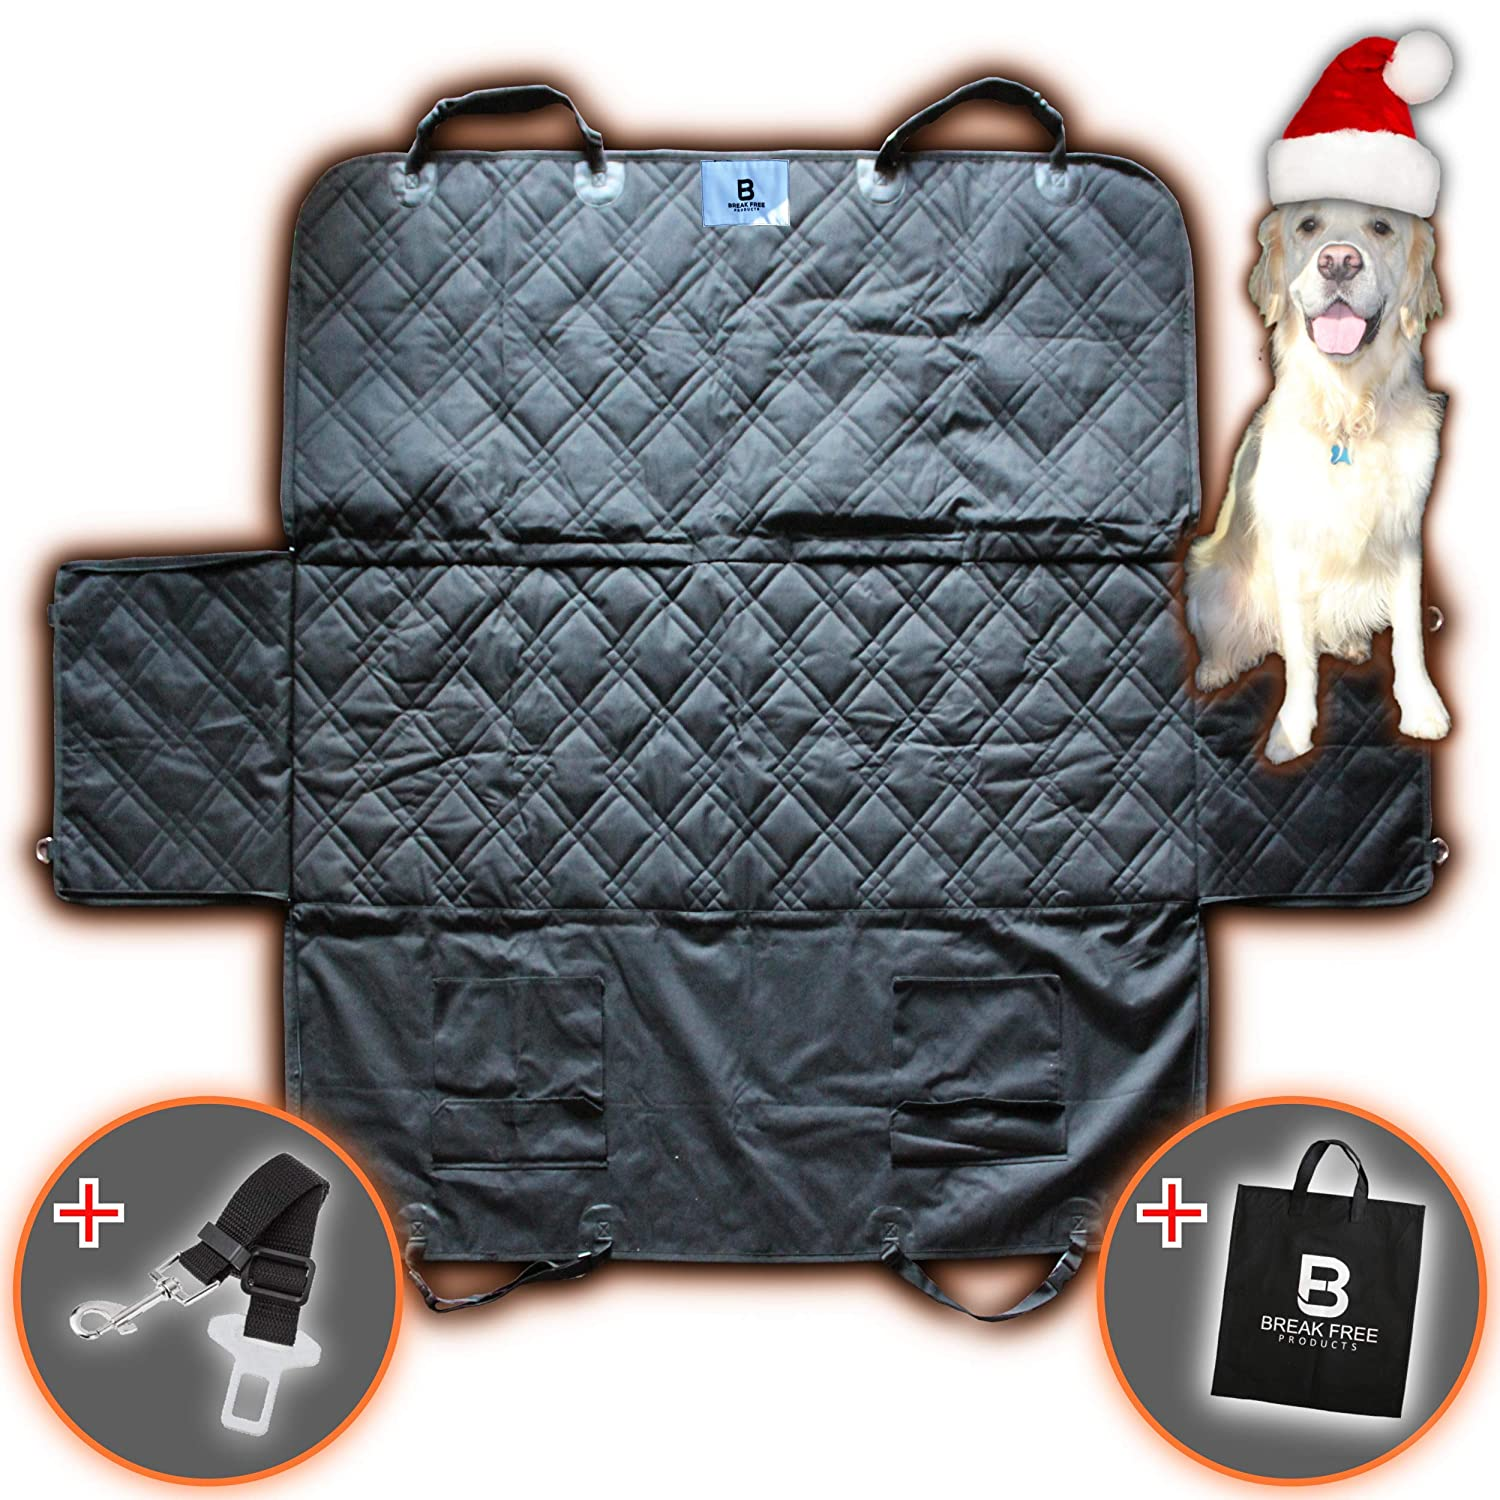 Dog Car Seat Cover, Heavy Duty, Luxury, High Quality, Waterproof & Non Slip Car Dog Seat Covers, Car Protection, Machine Washable, Dog Car Cover, Extra Storage, Easy Install, Universal Size (58'x54') Universal Size (58x54) Break Free Products CSC-08/09F